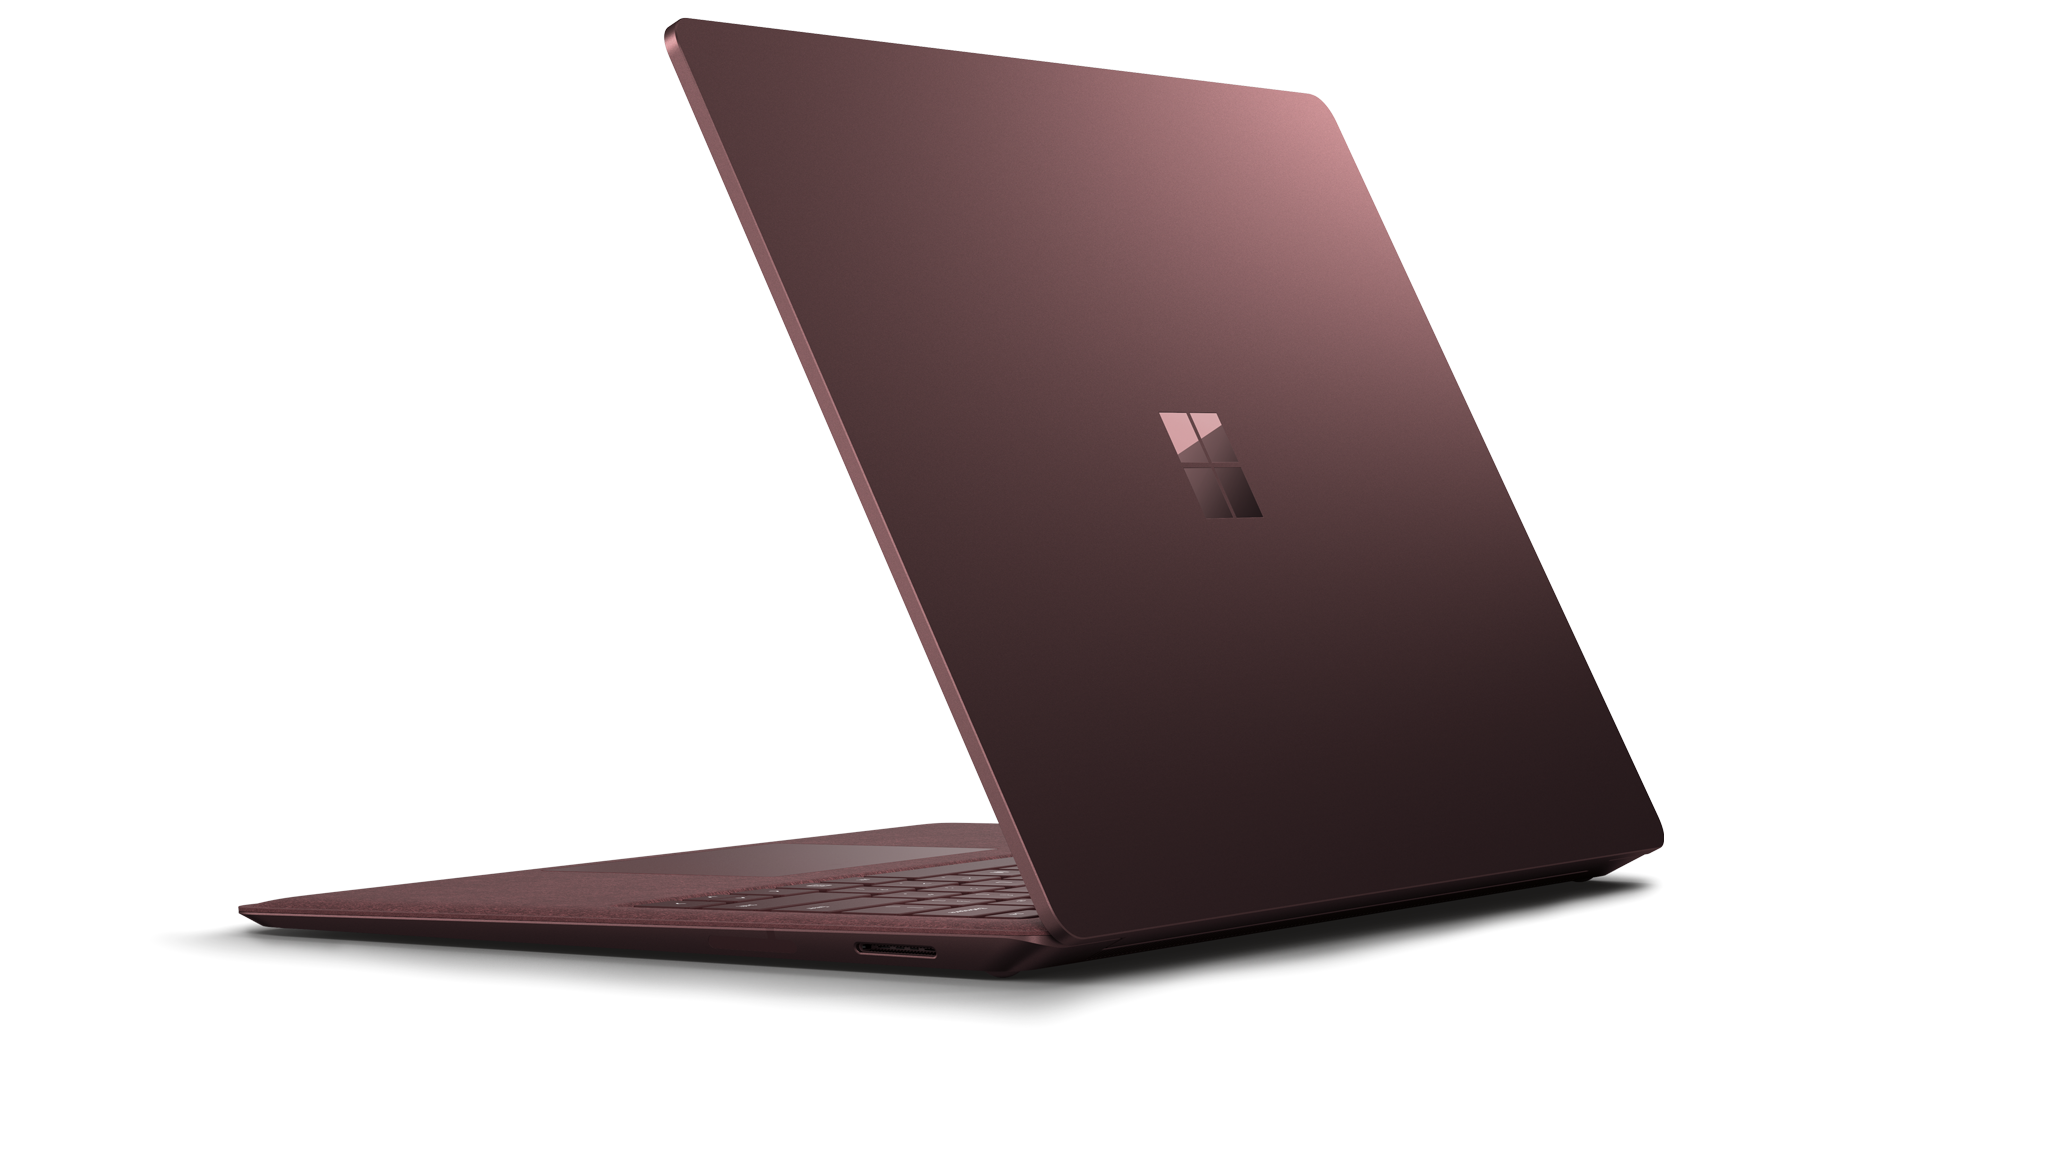 Zijaanzicht van de Surface Laptop 2